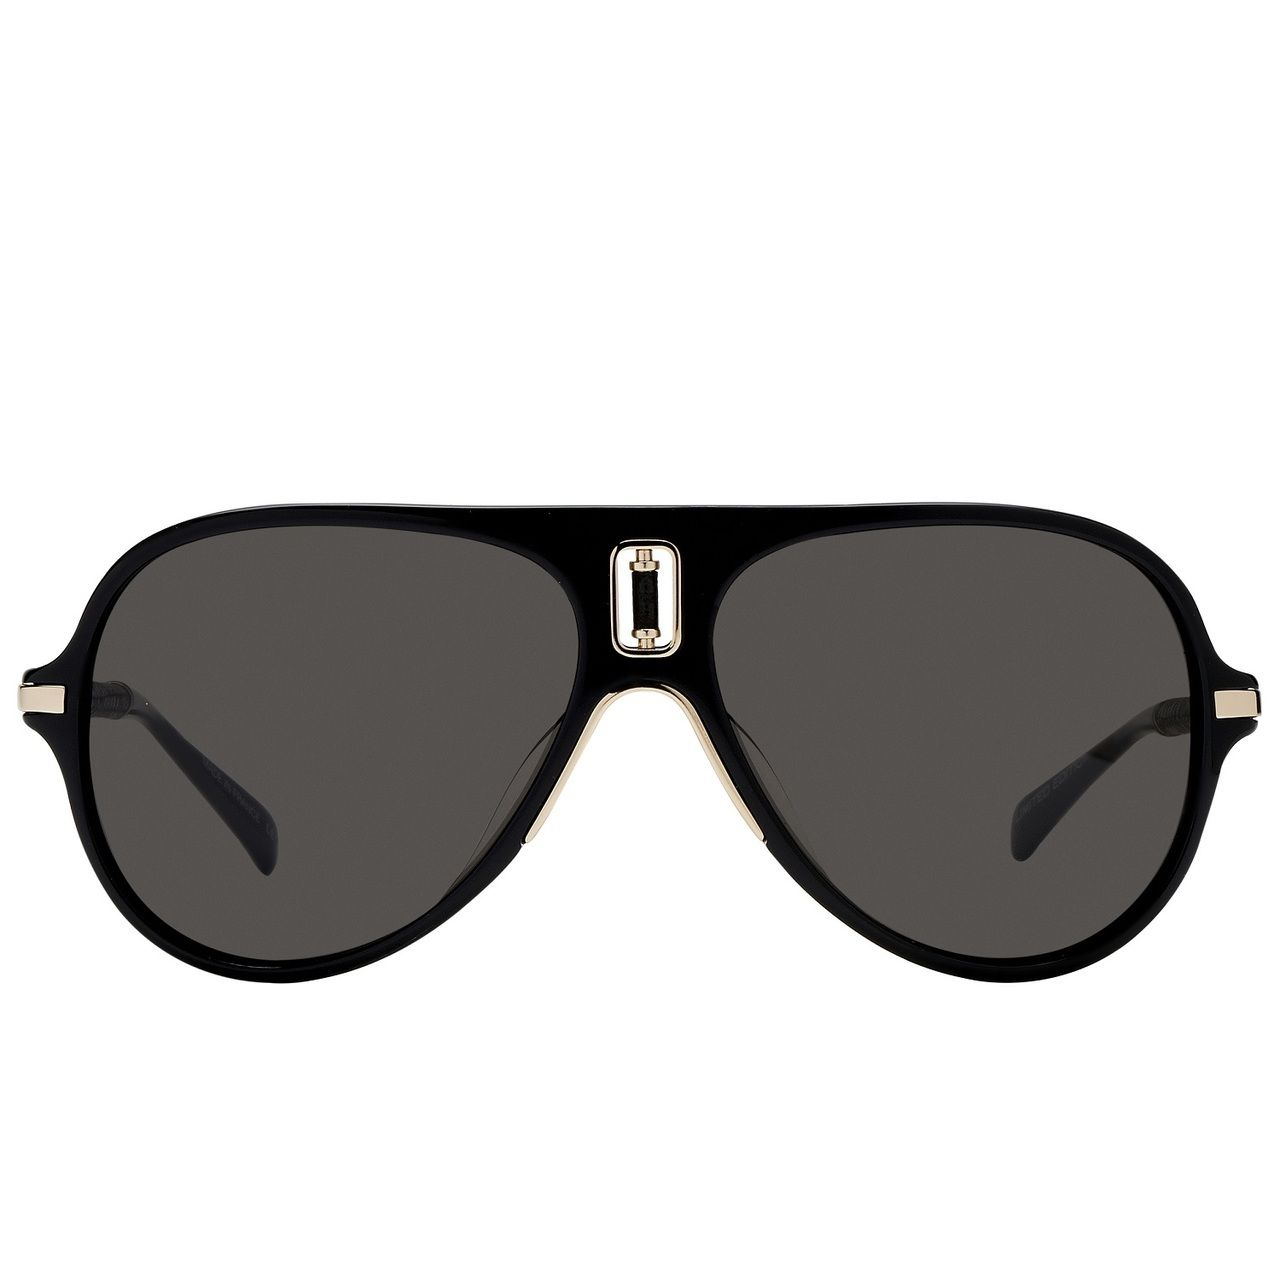 f270f4bdb206dc Balmain 'Limited Edition' acetate and metal aviator sunglasses |  CondemnedtoBeFree.com